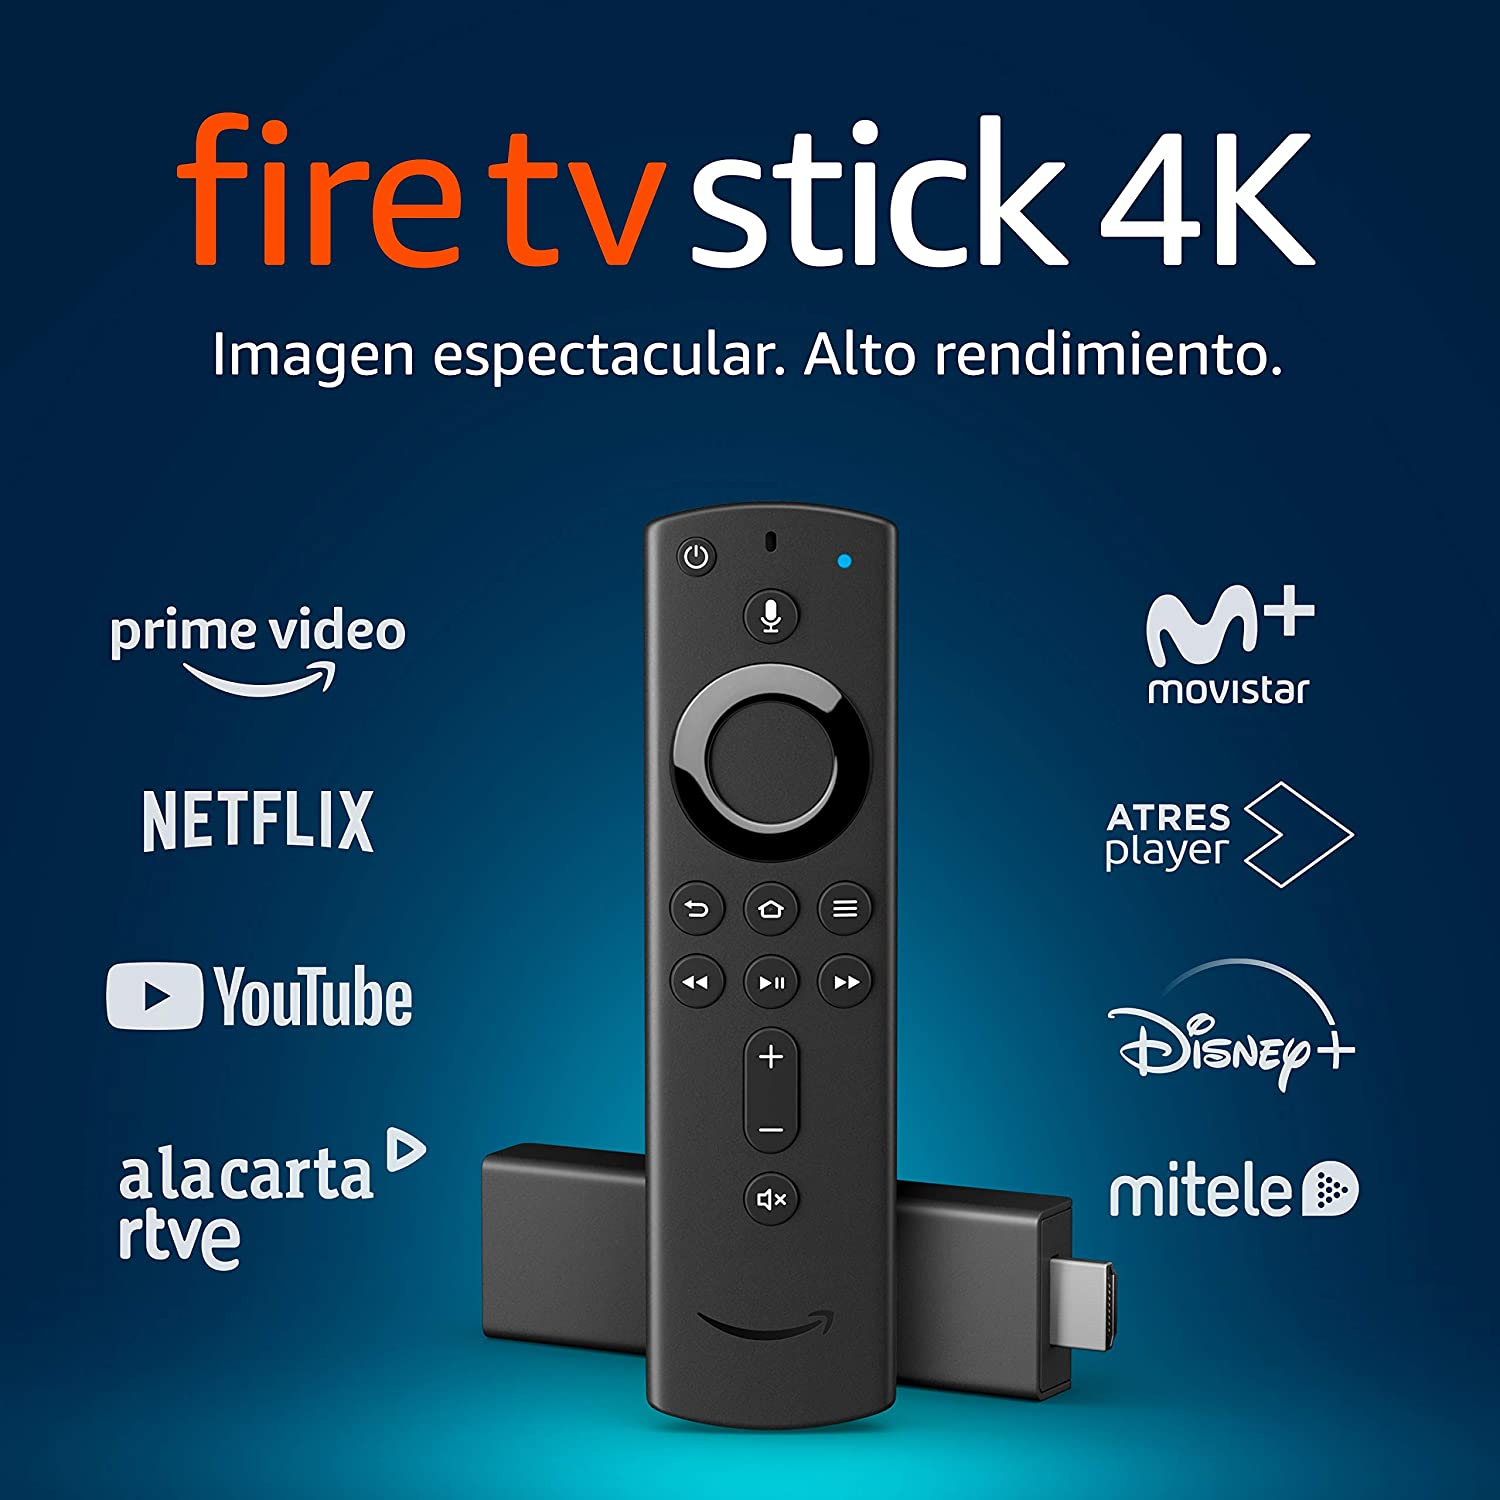 Fire TV Stick 4K Ultra HD con mando por voz Alexa de última generación | Reproductor de contenido multimedia en streaming: Amazon.es